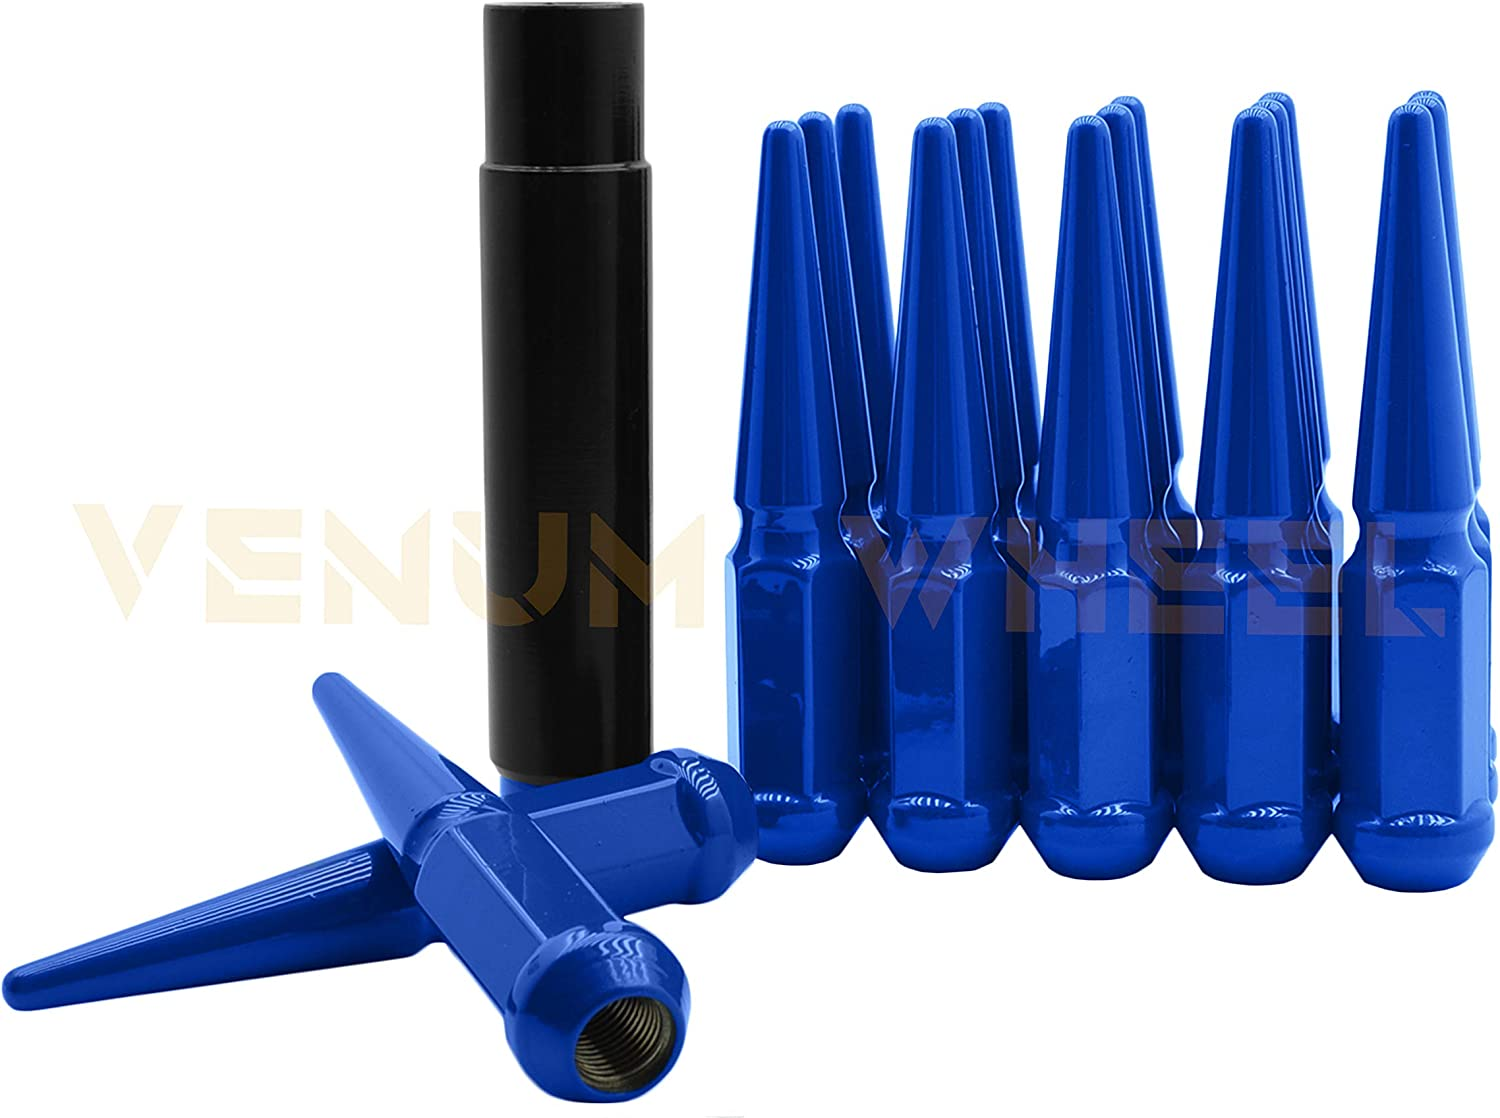 Key Venum wheel accessories 20 Pc Blue New Spike Lug Nuts 4.5 Tall Solid Spiked M14x1.5 Works with Dodge Durango Challenger Charger Magnum 2005-2019 /& 2011 Ram Models